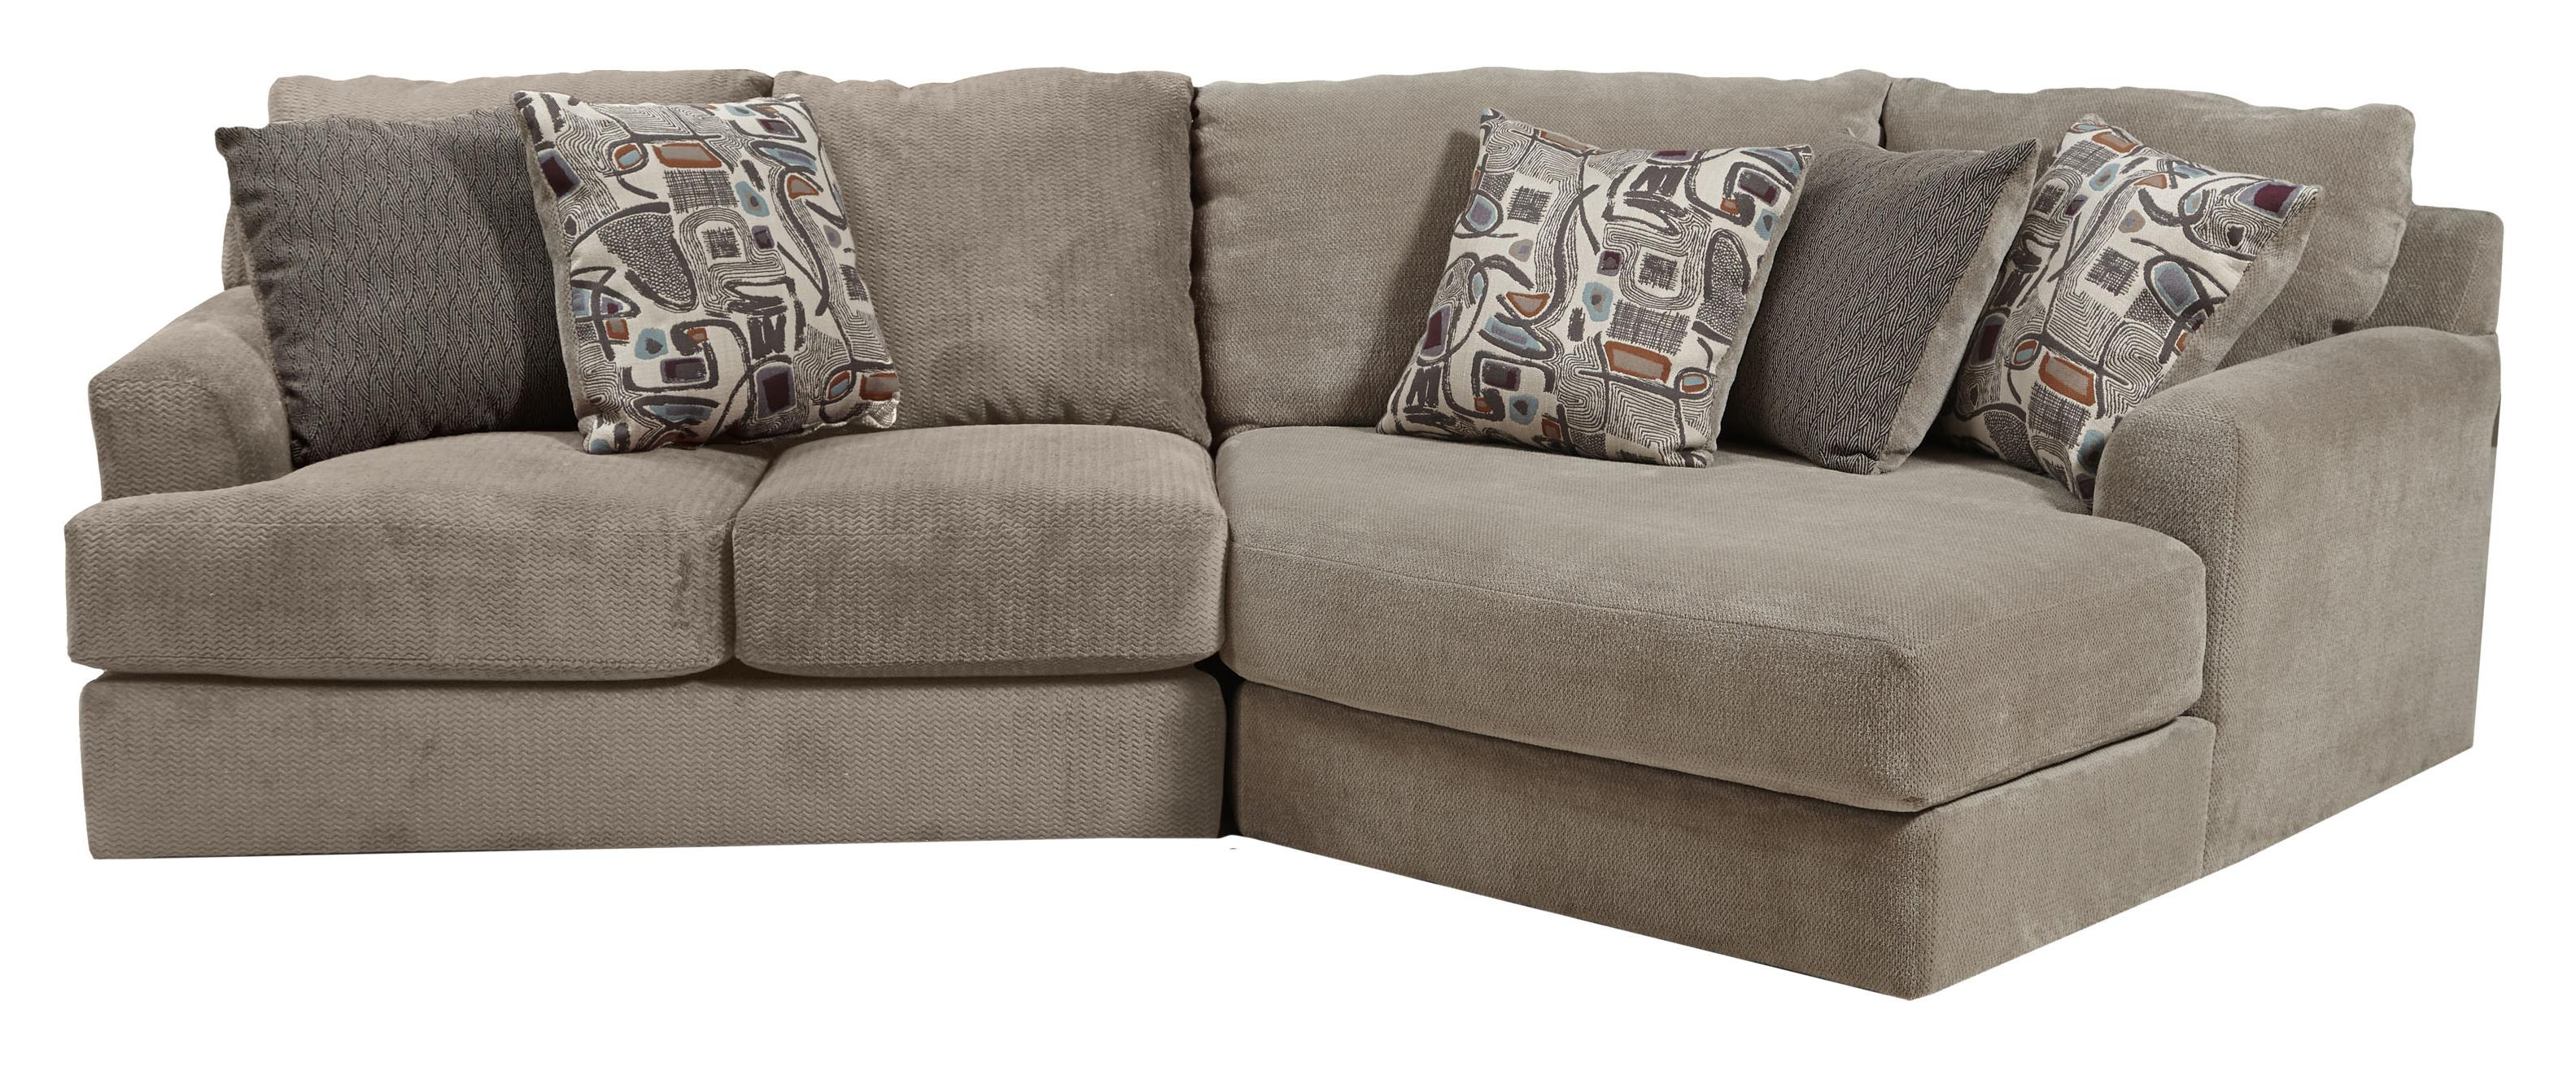 Jackson Furniture Malibu Three Seat Sectional  - Item Number: 3239-46+96-1983-36